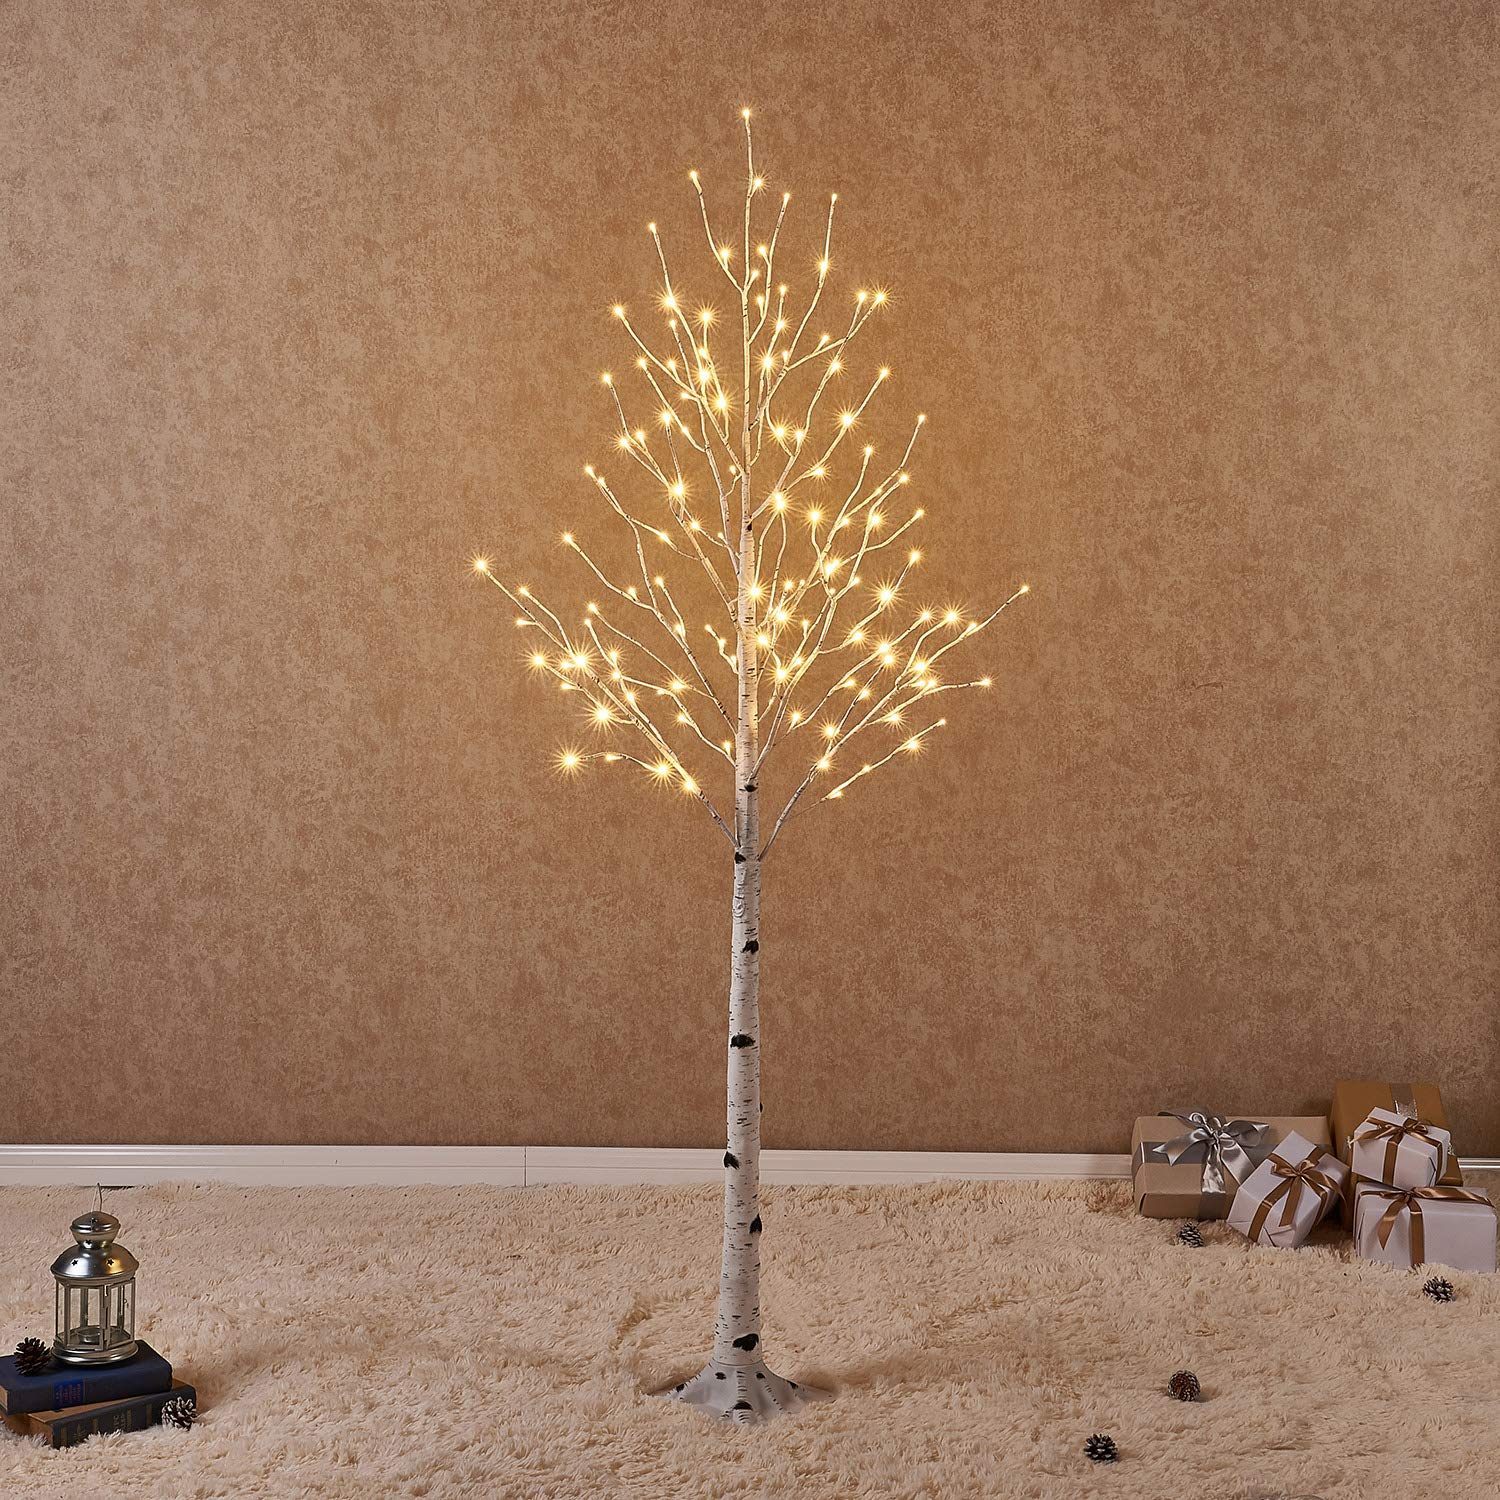 Hairui Pre Lit Birch Tree 6FT 128L for Home Decoration, White Christmas Tree with LED Lights Warm White, Lighted Artificial Tree with Partial Twinkling Feature Output 24V Safety Voltage